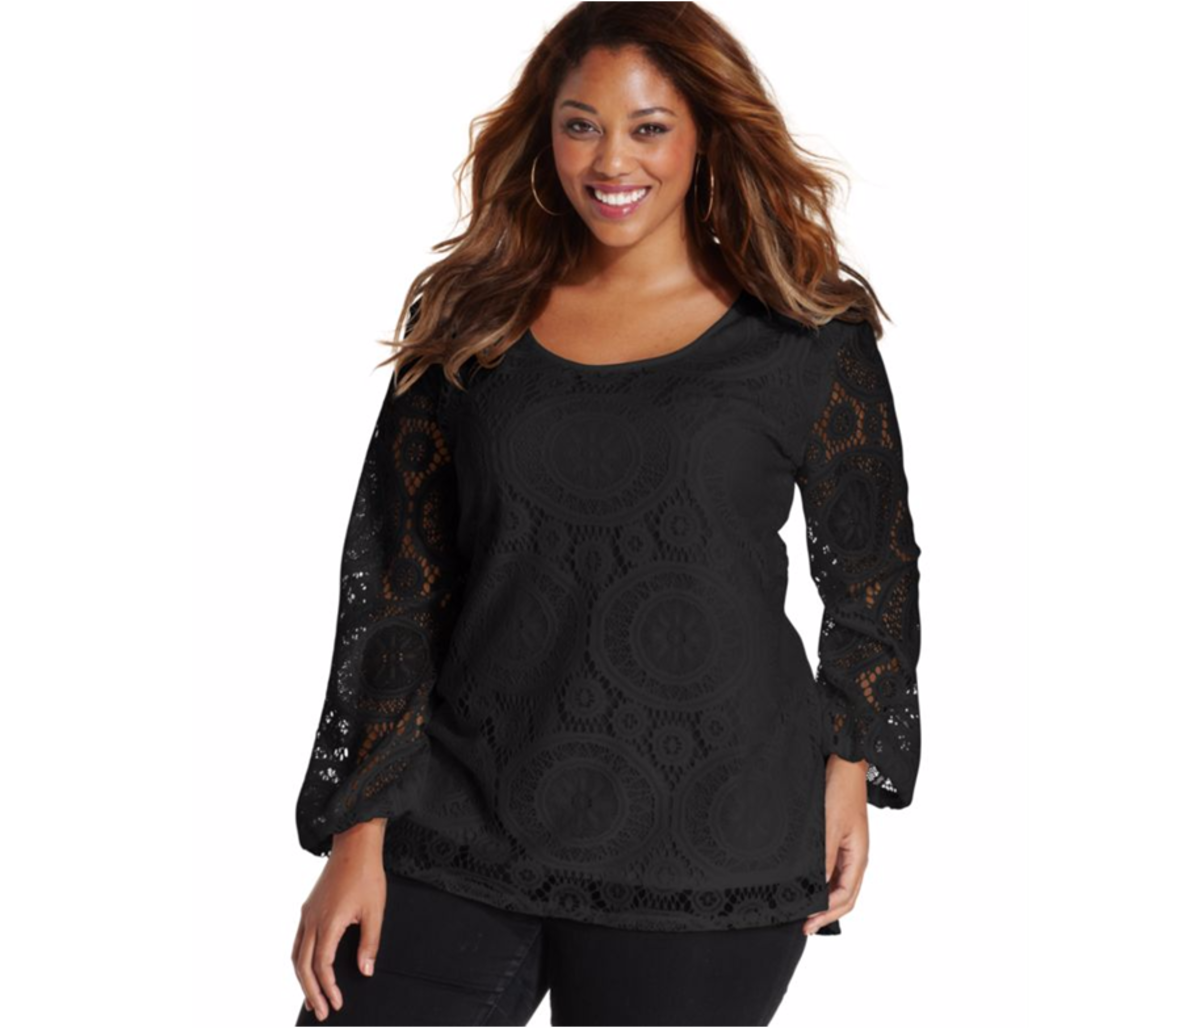 easy fit long-sleeved blouse with lace overlay and scoop neck